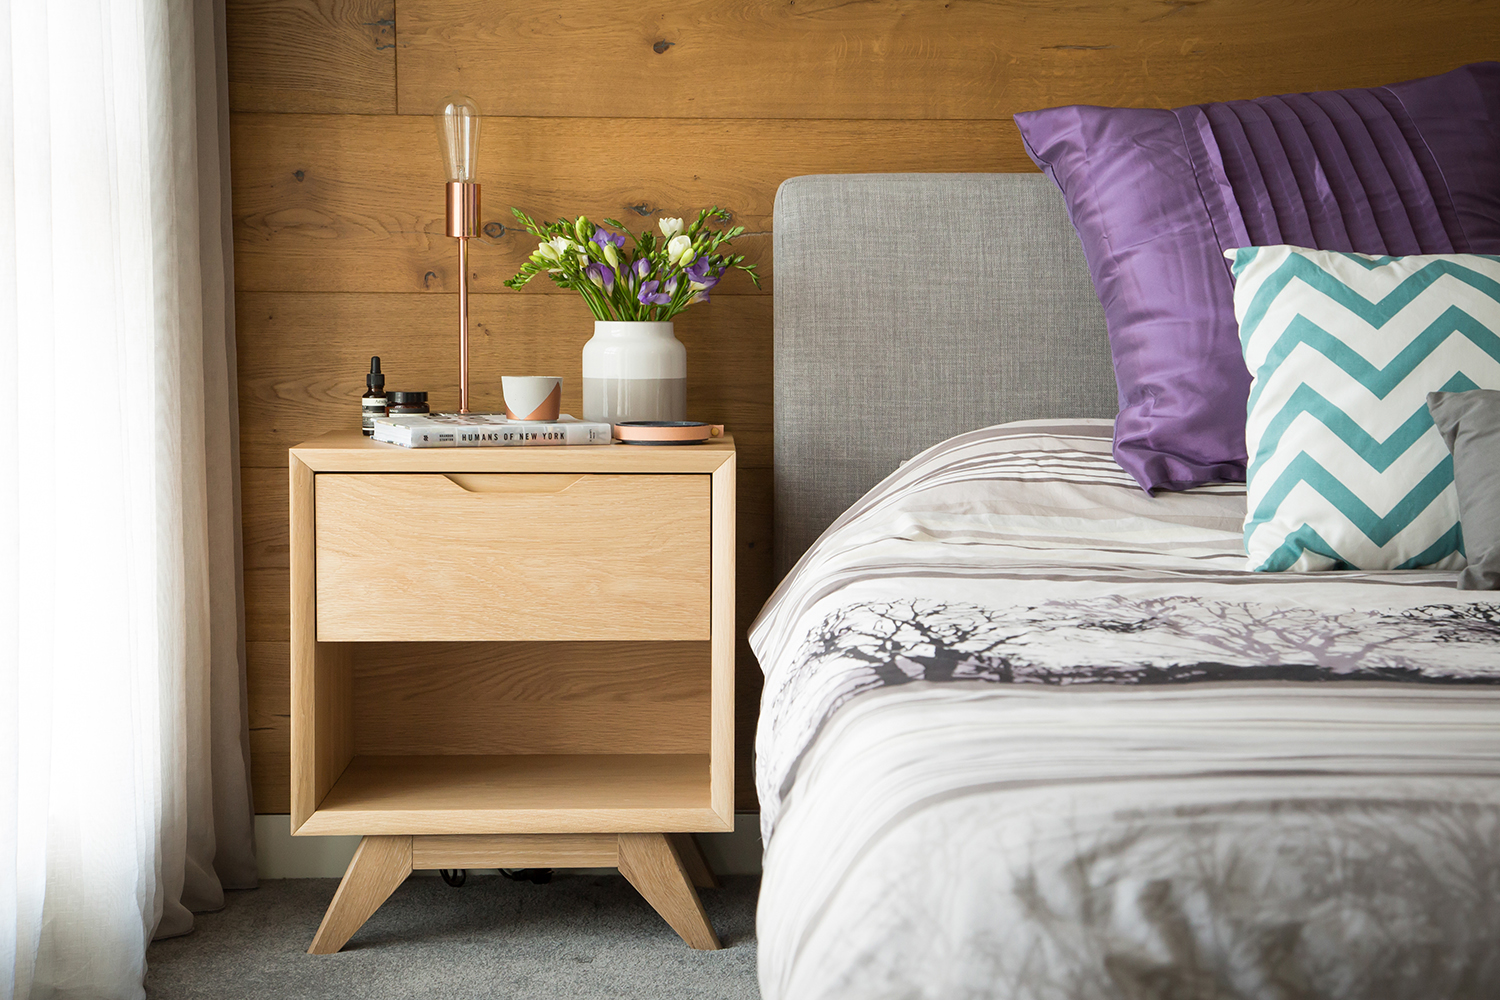 How-To-Create-Scandinavian-Style-In-Your-Home - Bedside-table-with-vase-light-off